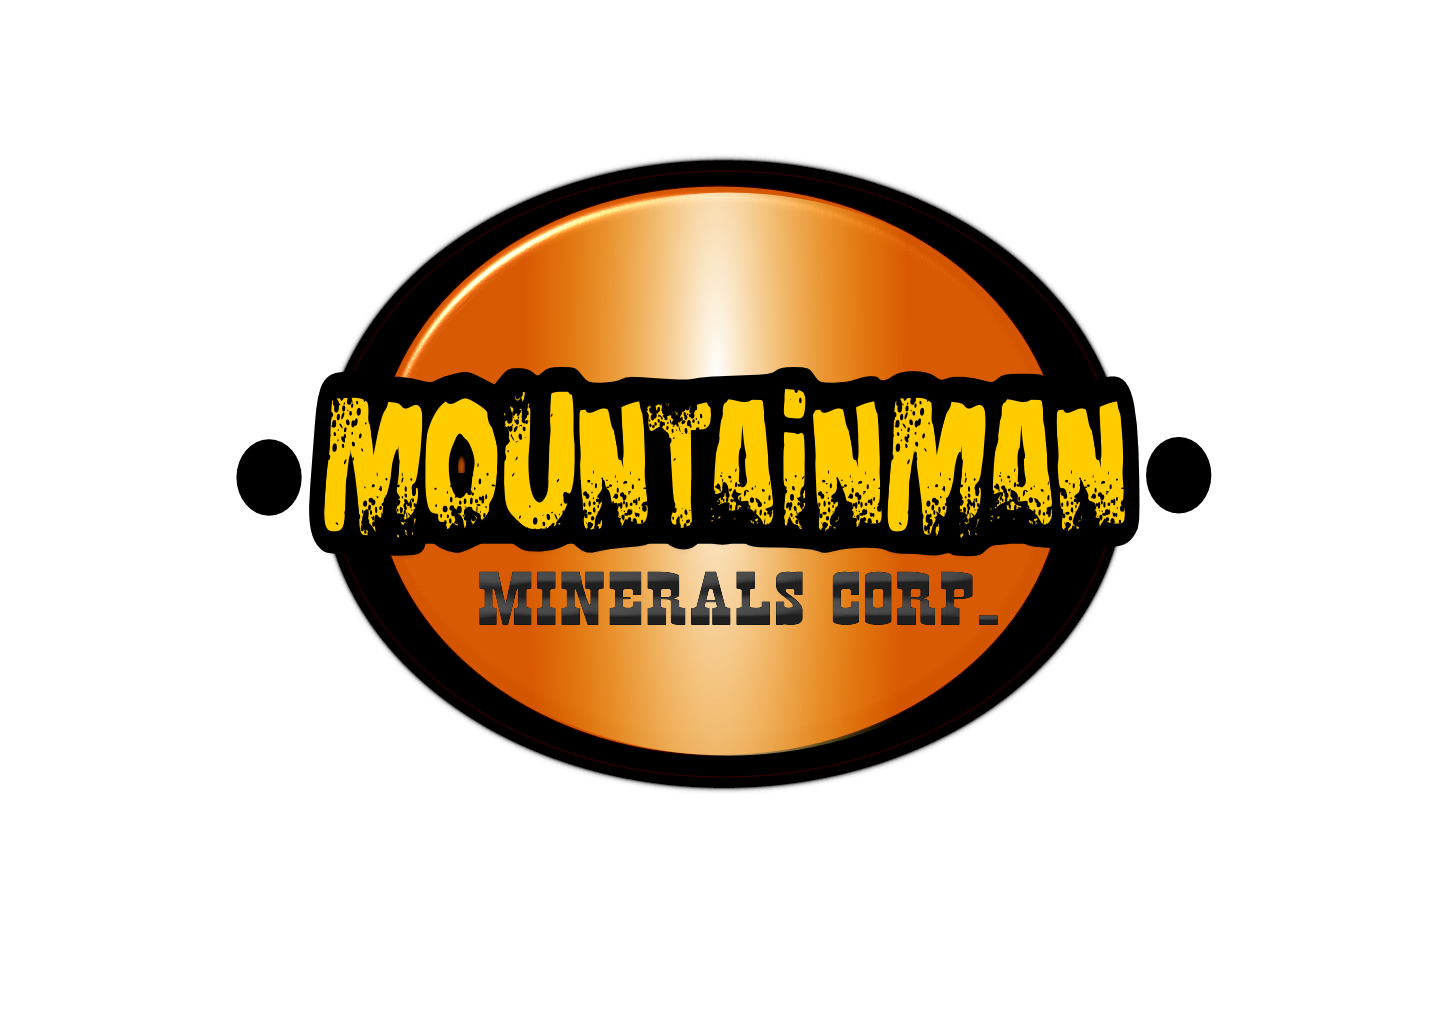 Logo Design by Joseph calunsag Cagaanan - Entry No. 14 in the Logo Design Contest Mountian Man Minerals Corp. Logo Design.